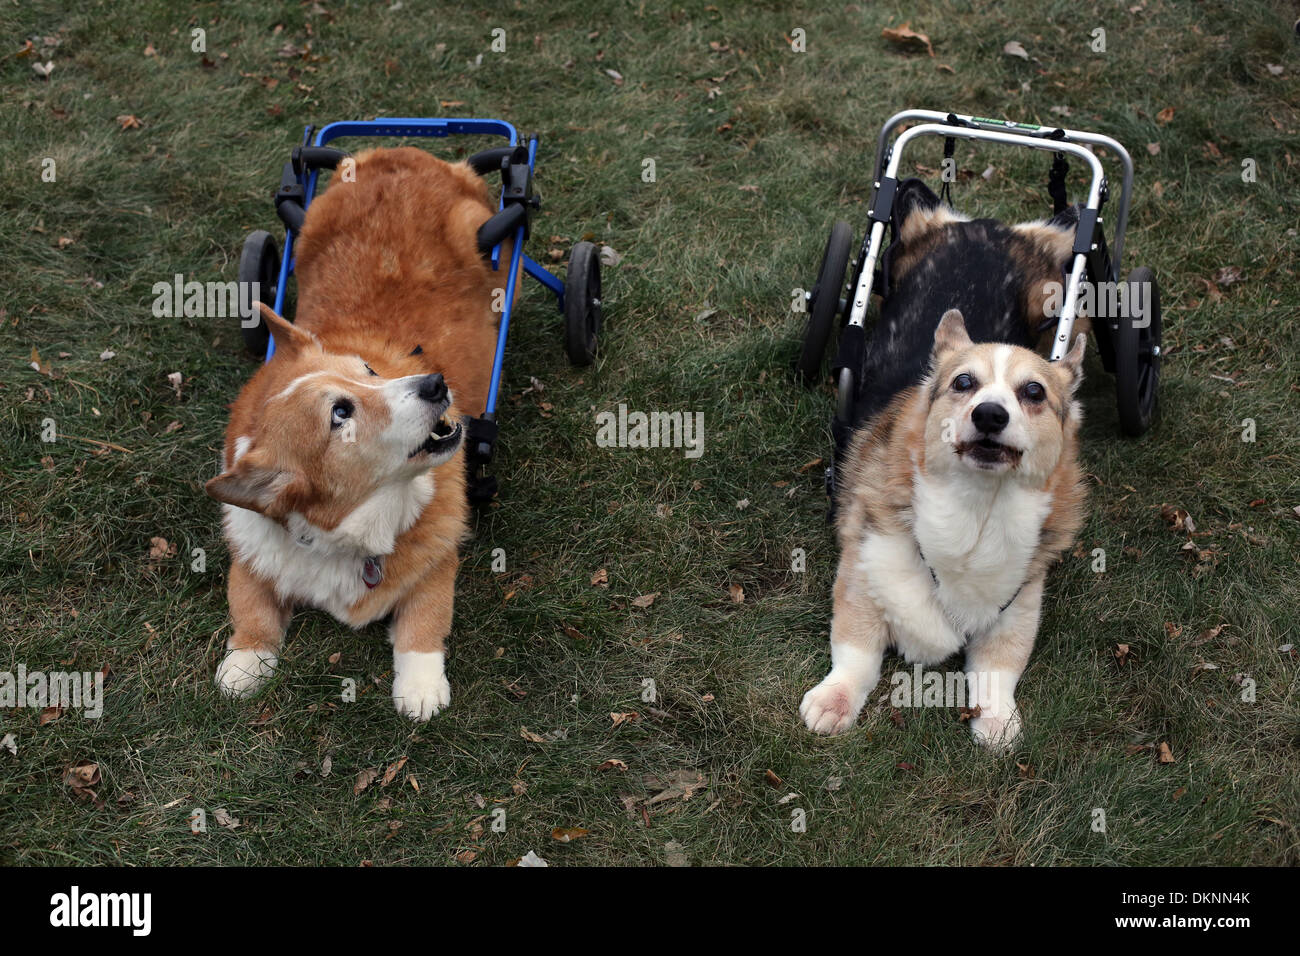 Two old Corgi dogs with carts. - Stock Image